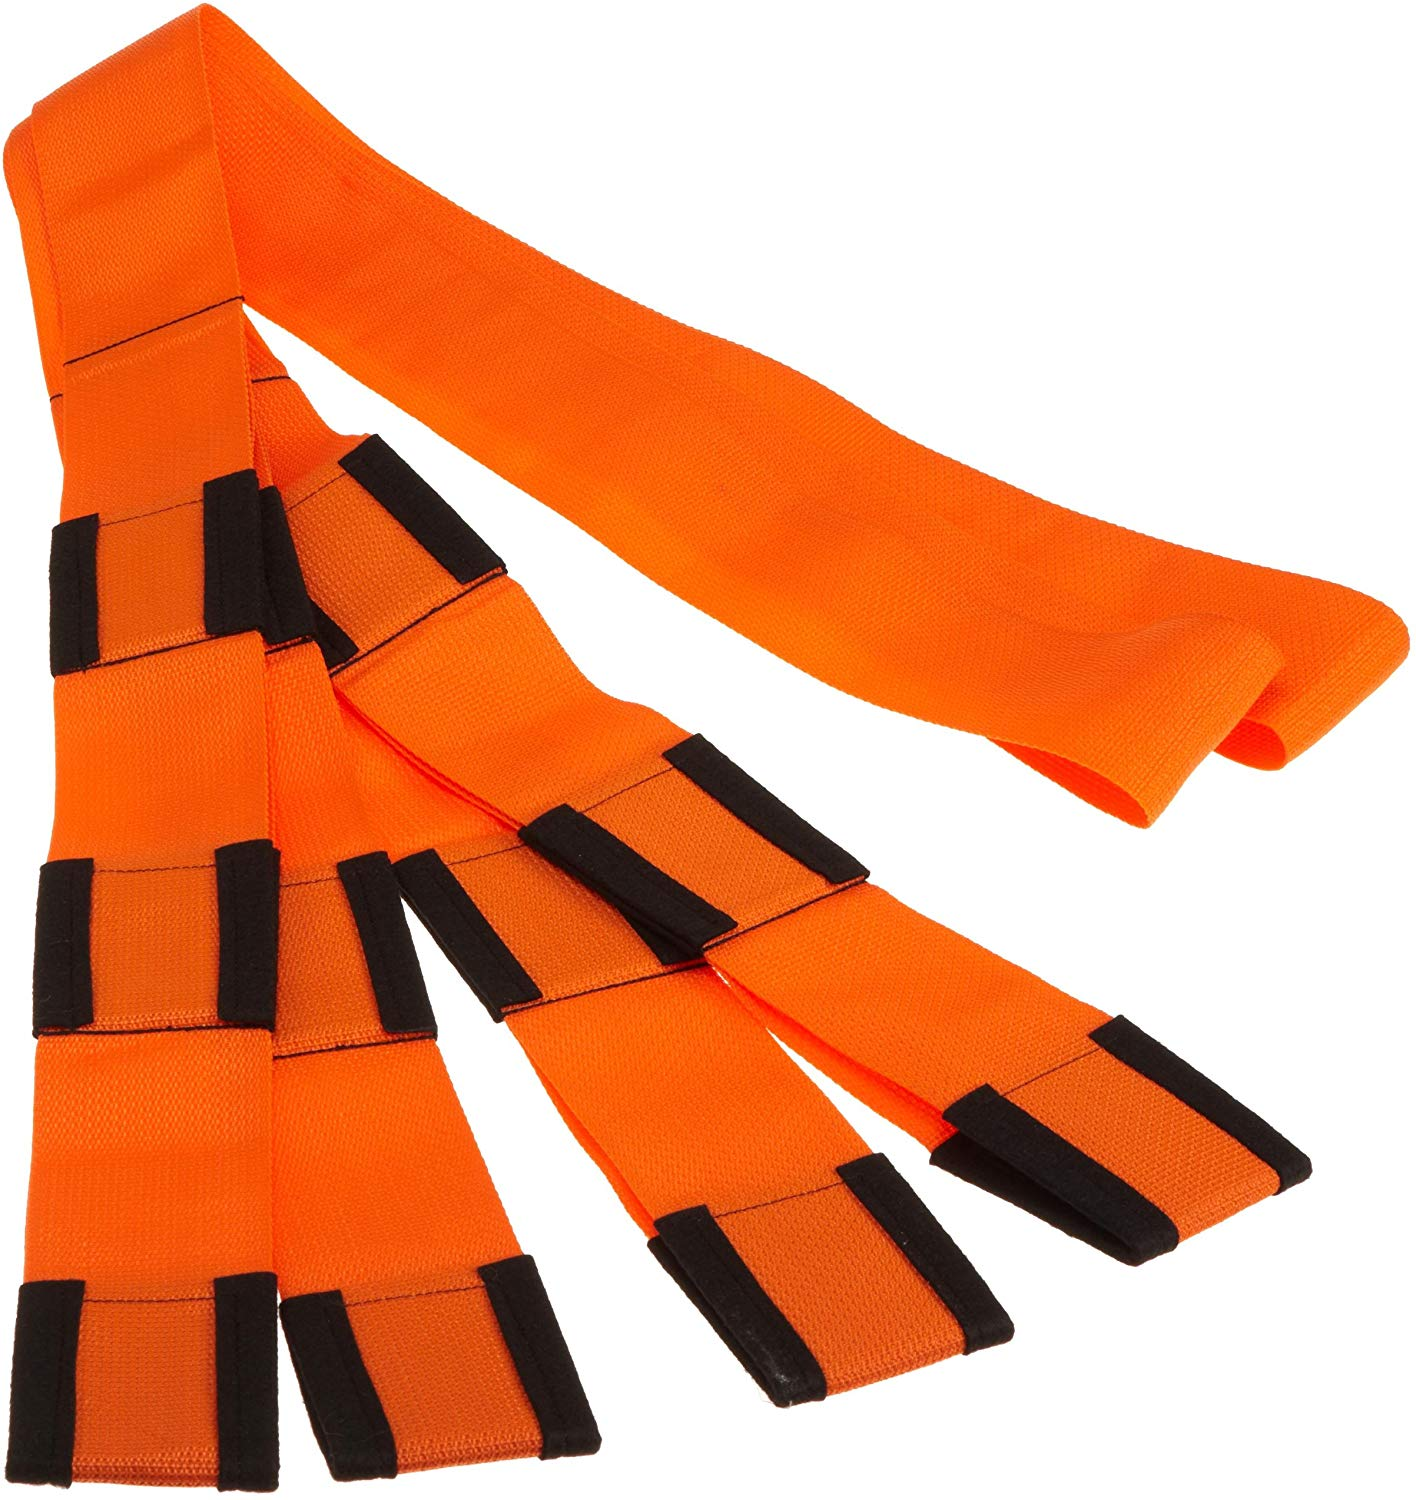 Save £13.14 on Forearm Forklift Lifting and Moving Straps